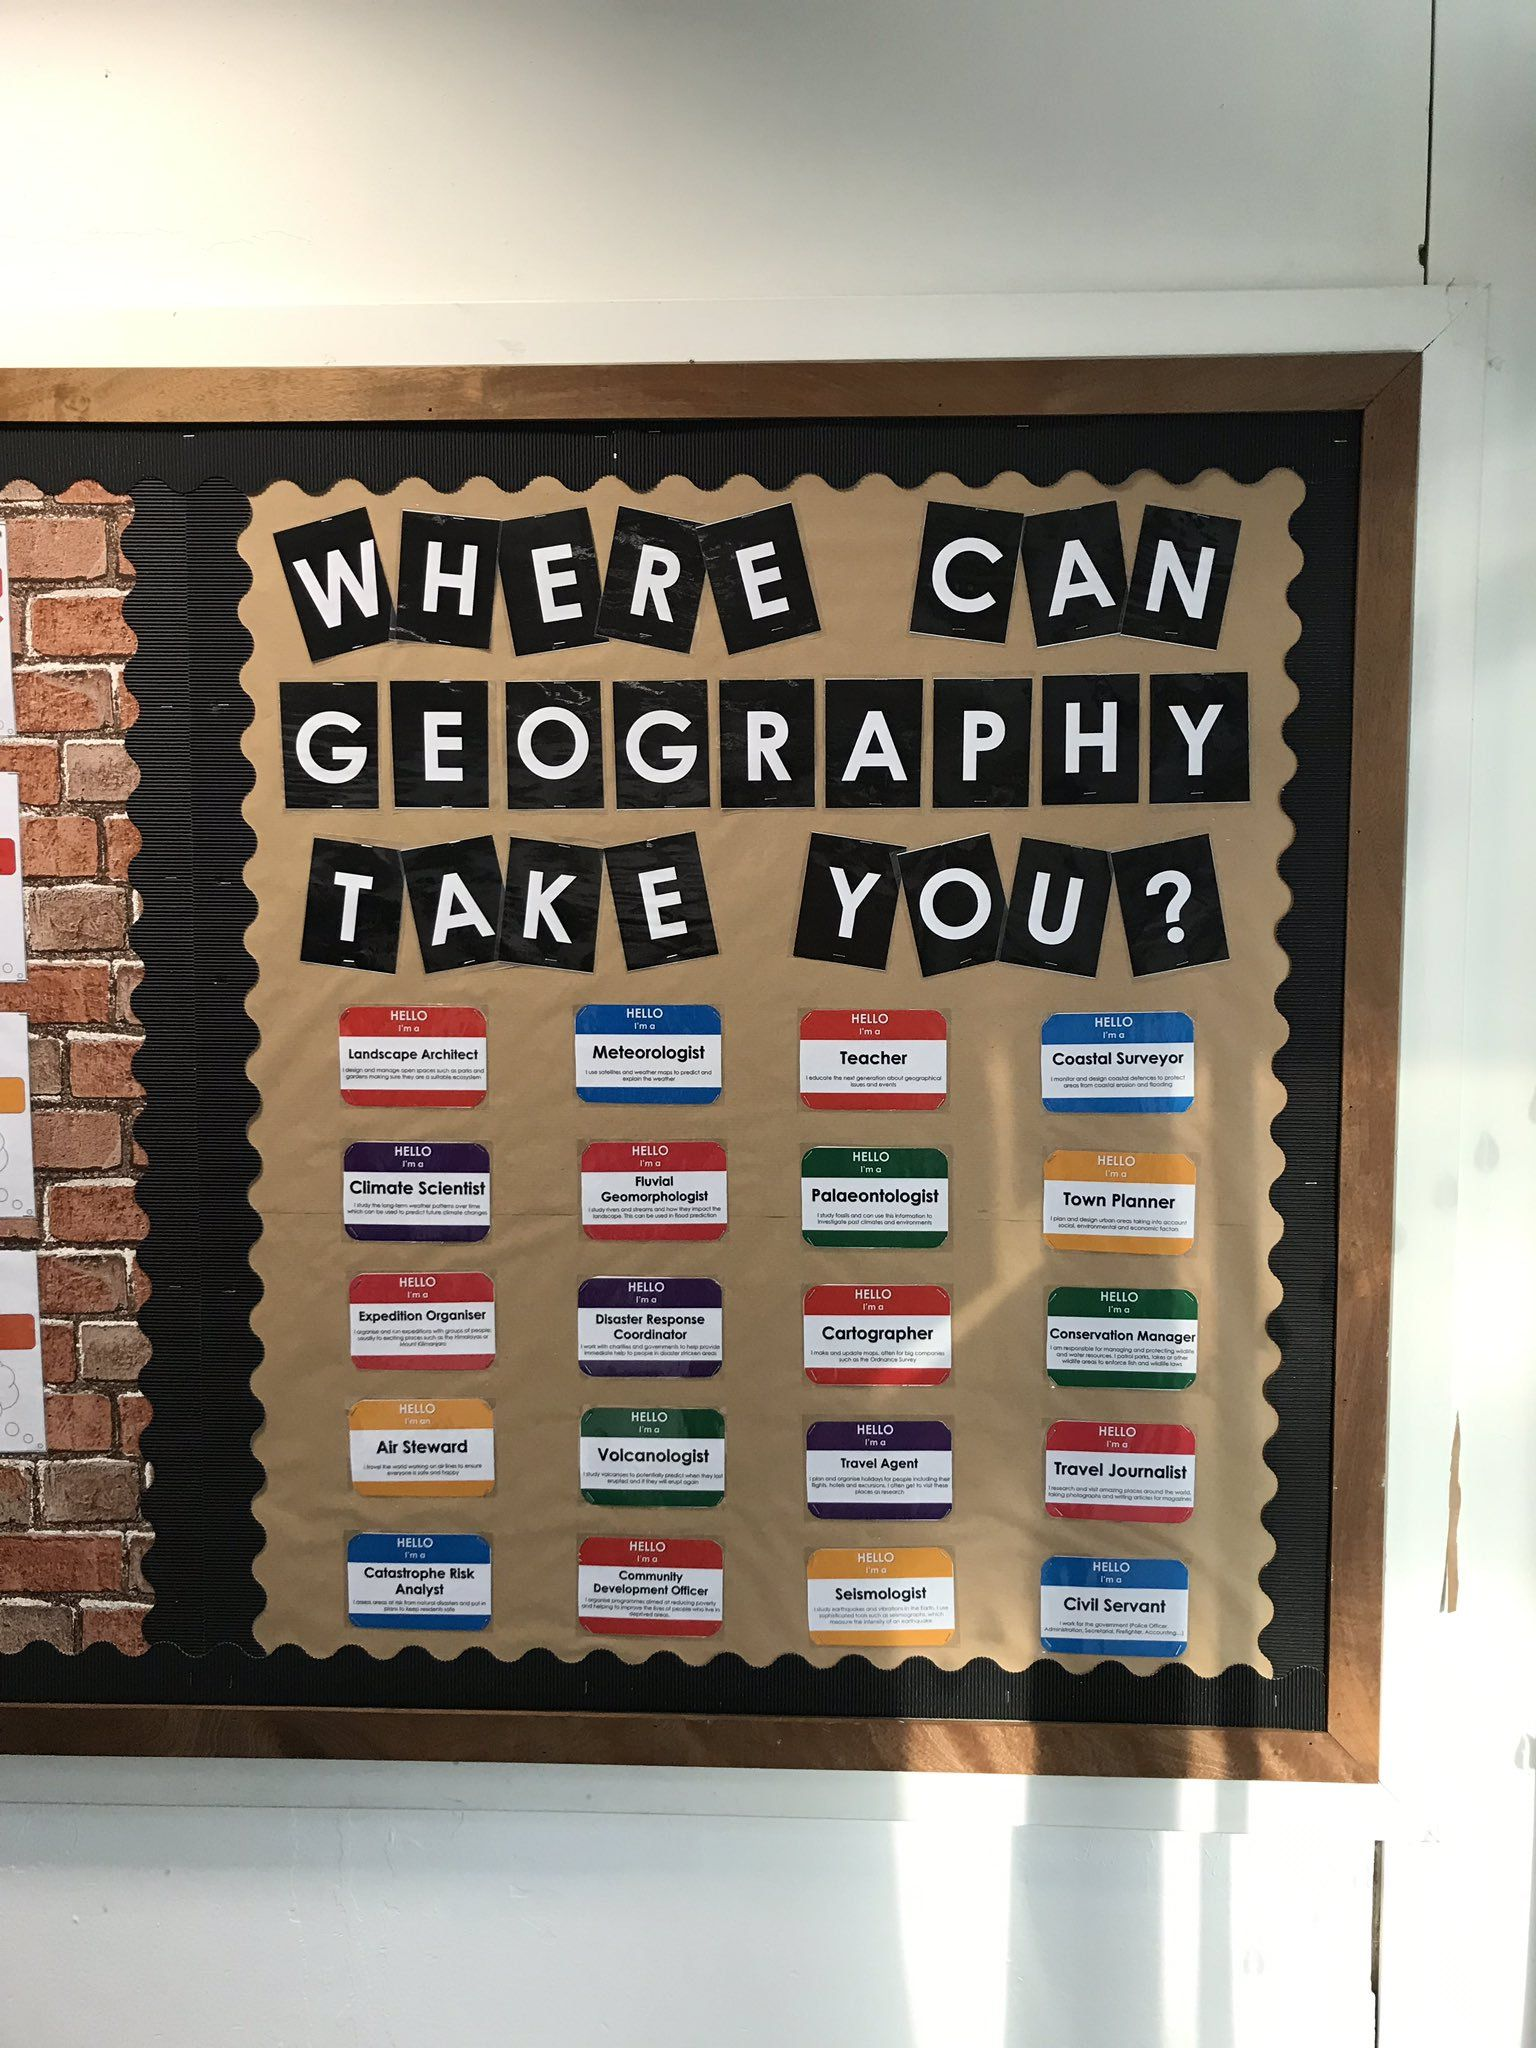 What Kind Of Careers Can An Interest In Geography Lead To